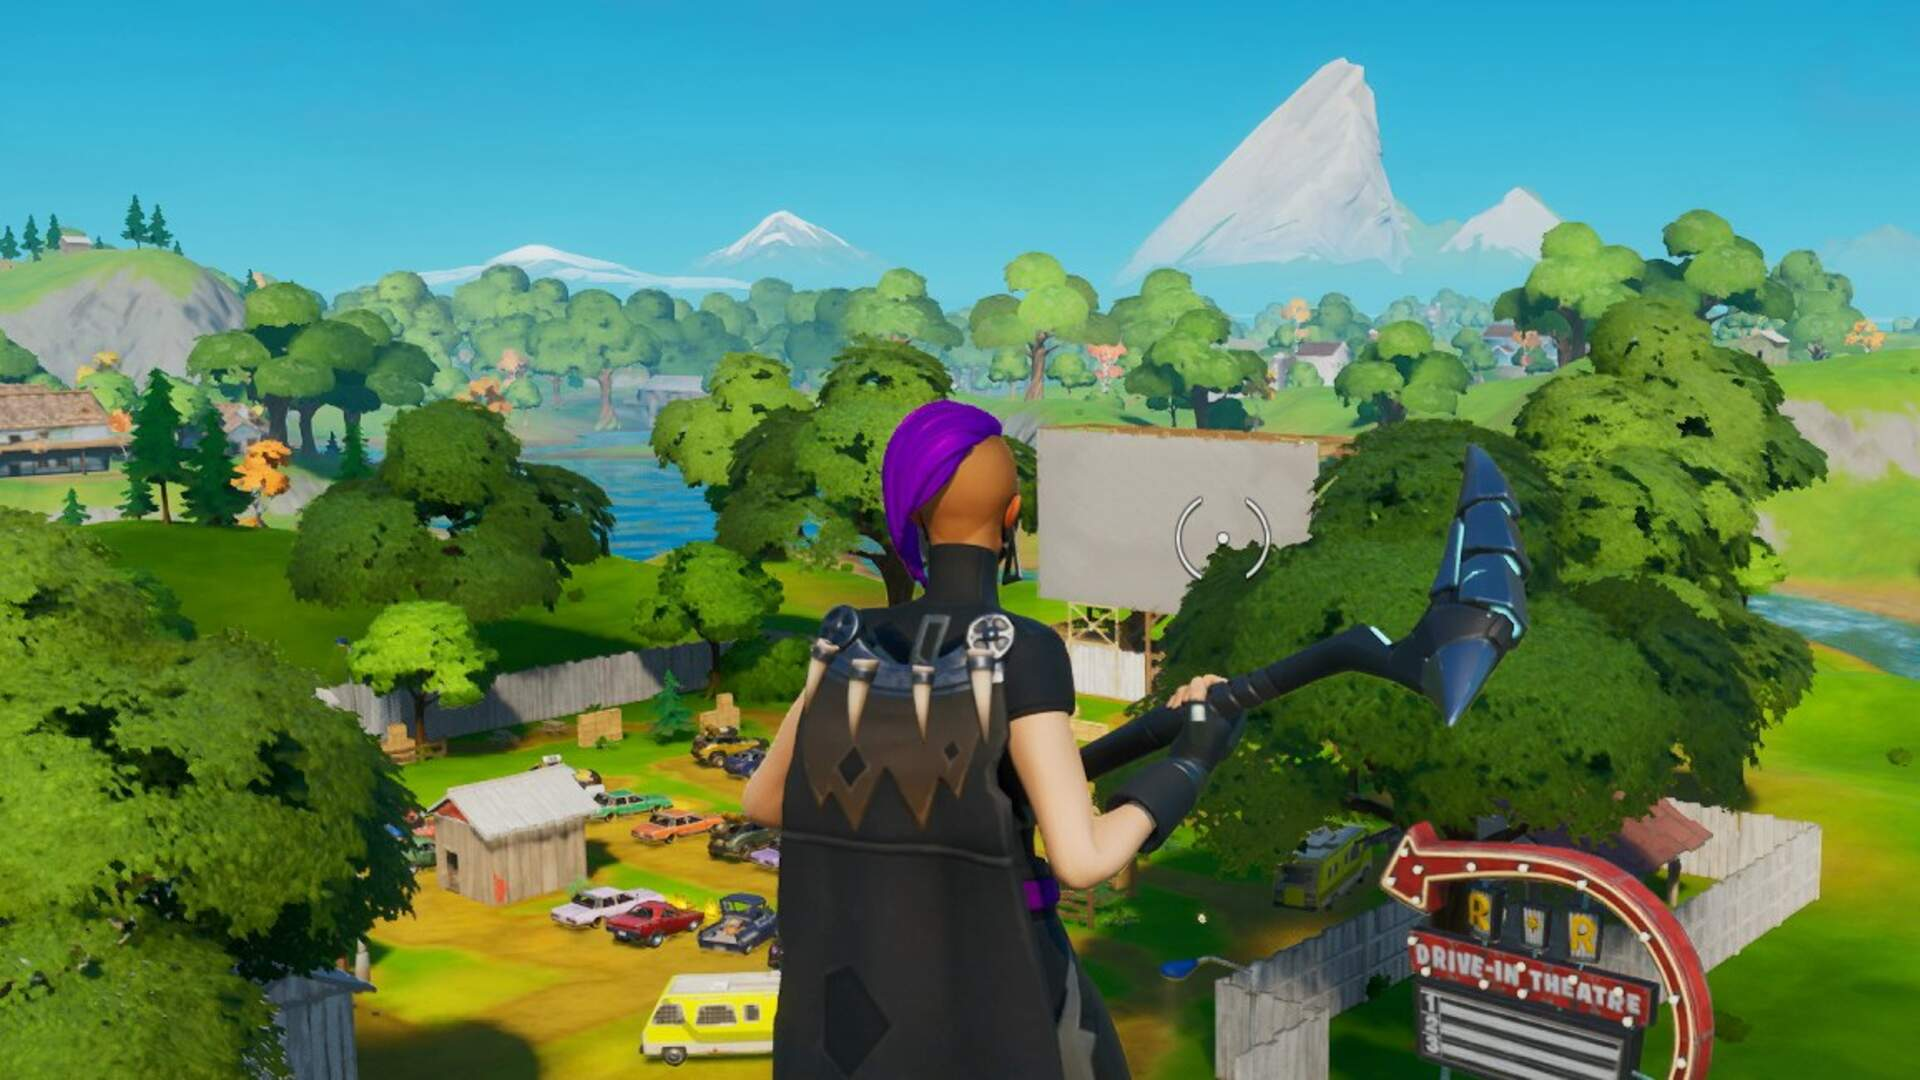 Fortnite 2 Map All Named Locations And Landmarks On The New Fortnite Map Usgamer English العربية deutsch español (spain) español (la) français italiano 日本語 한국어 polski português (brasil) русский türkçe 中文(简体) 中文(繁體). fortnite 2 map all named locations